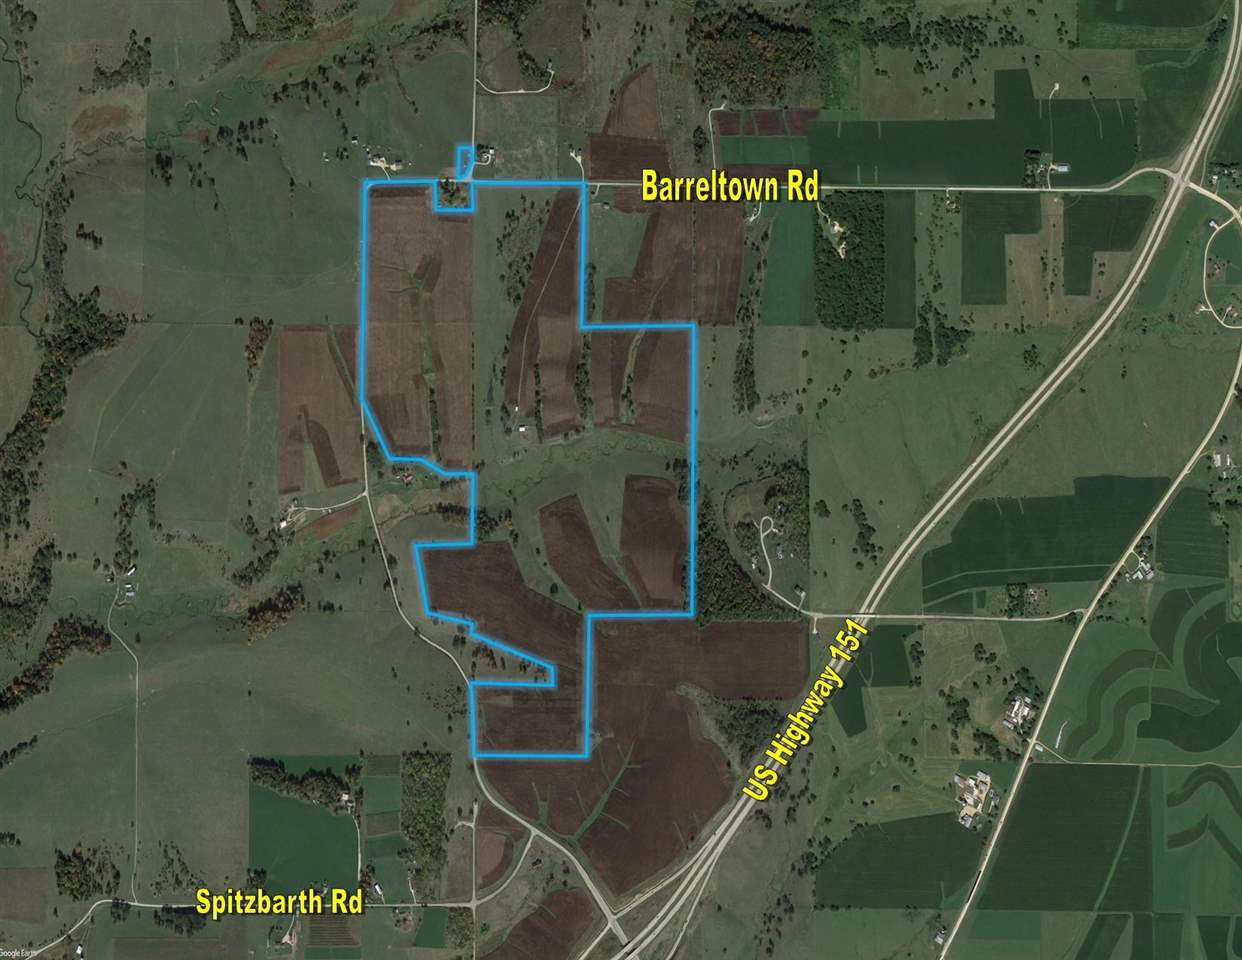 317 Acres M/L Barreltown Rd, Mineral Point, Wisconsin 53565, ,Lots & Acreage,For Sale,Barreltown Rd,1910333